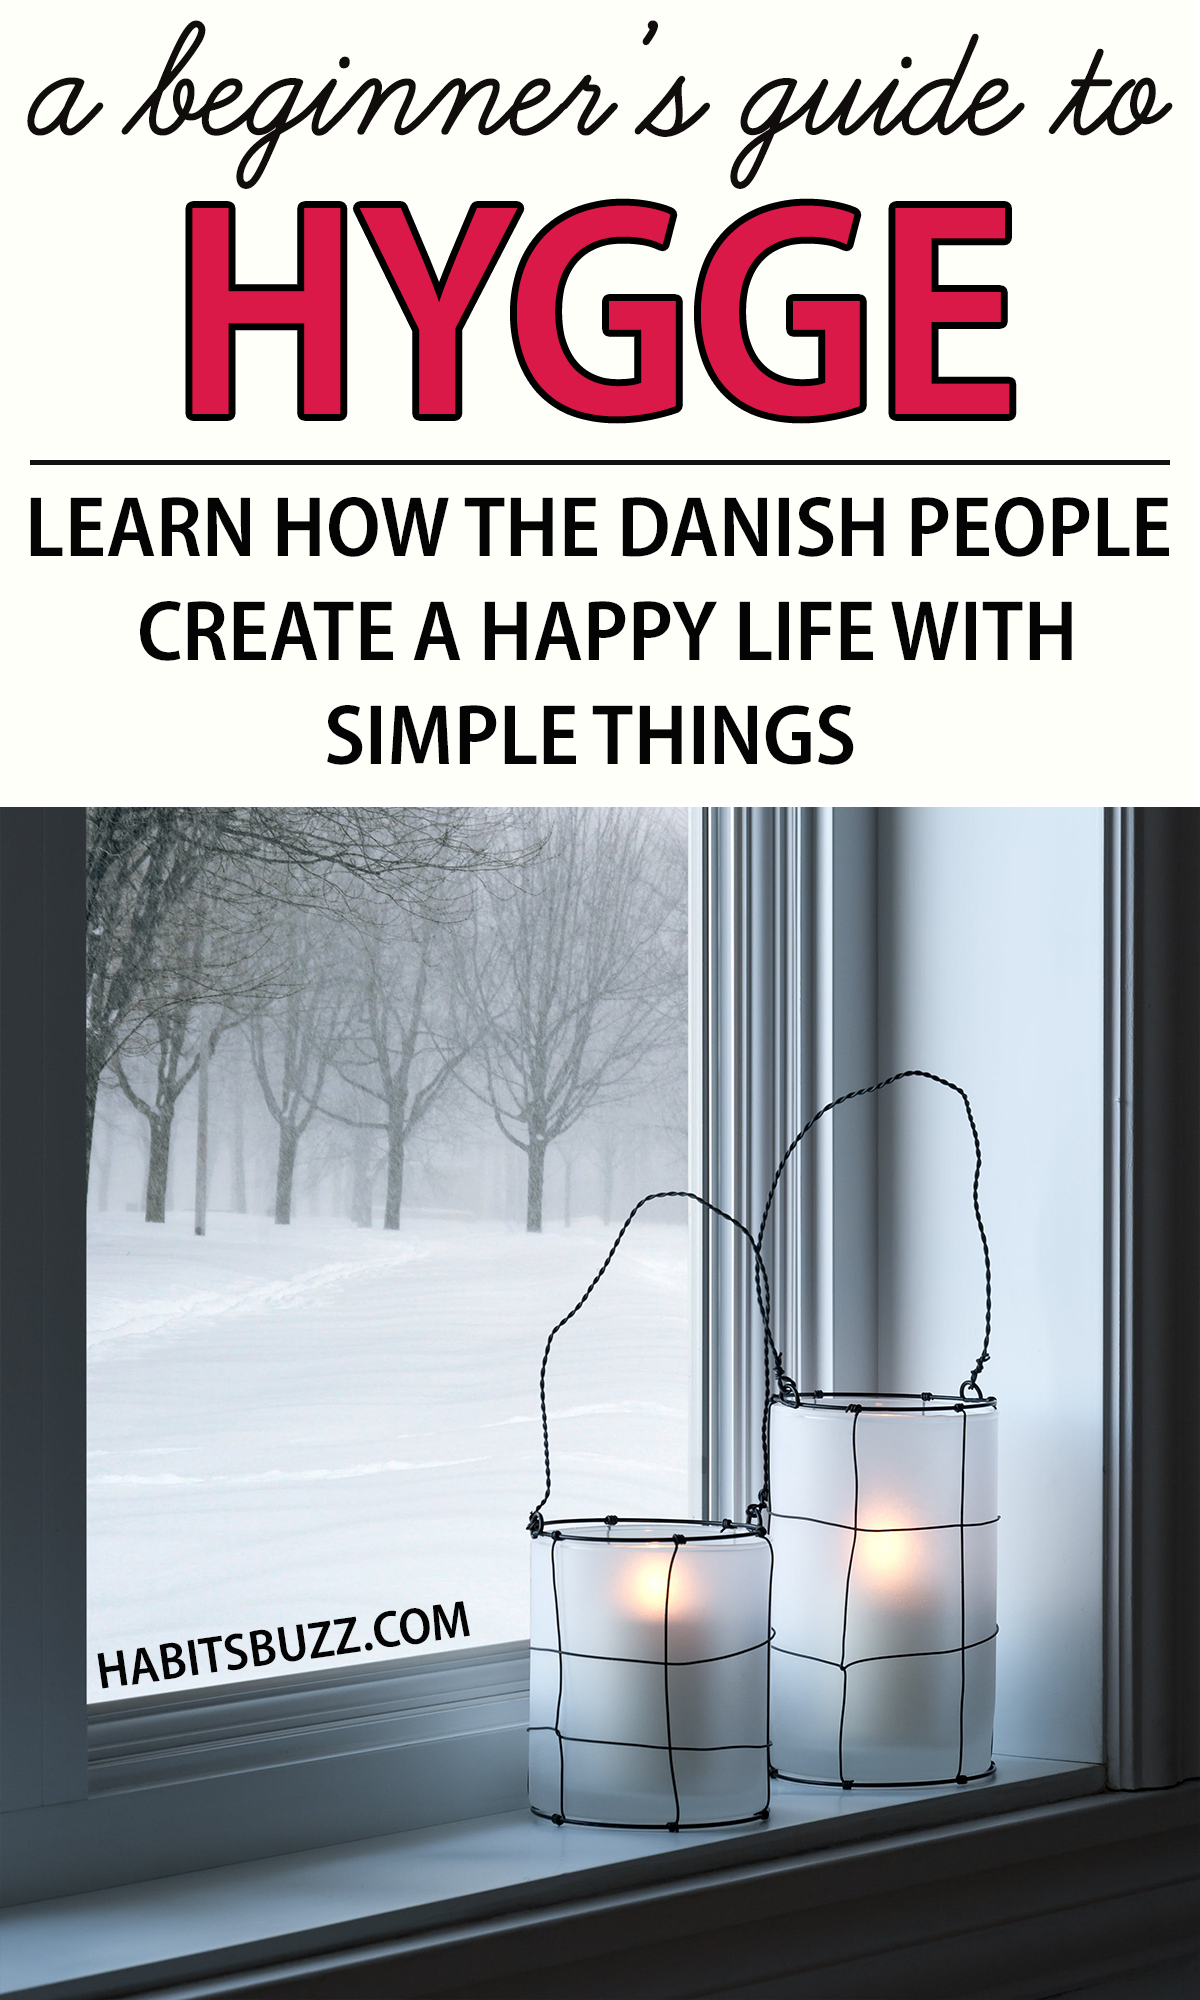 What Is Hygge A Beginner S Guide To The Danish Secret To Happiness In 2020 What Is Hygge Hygge Life Hygge